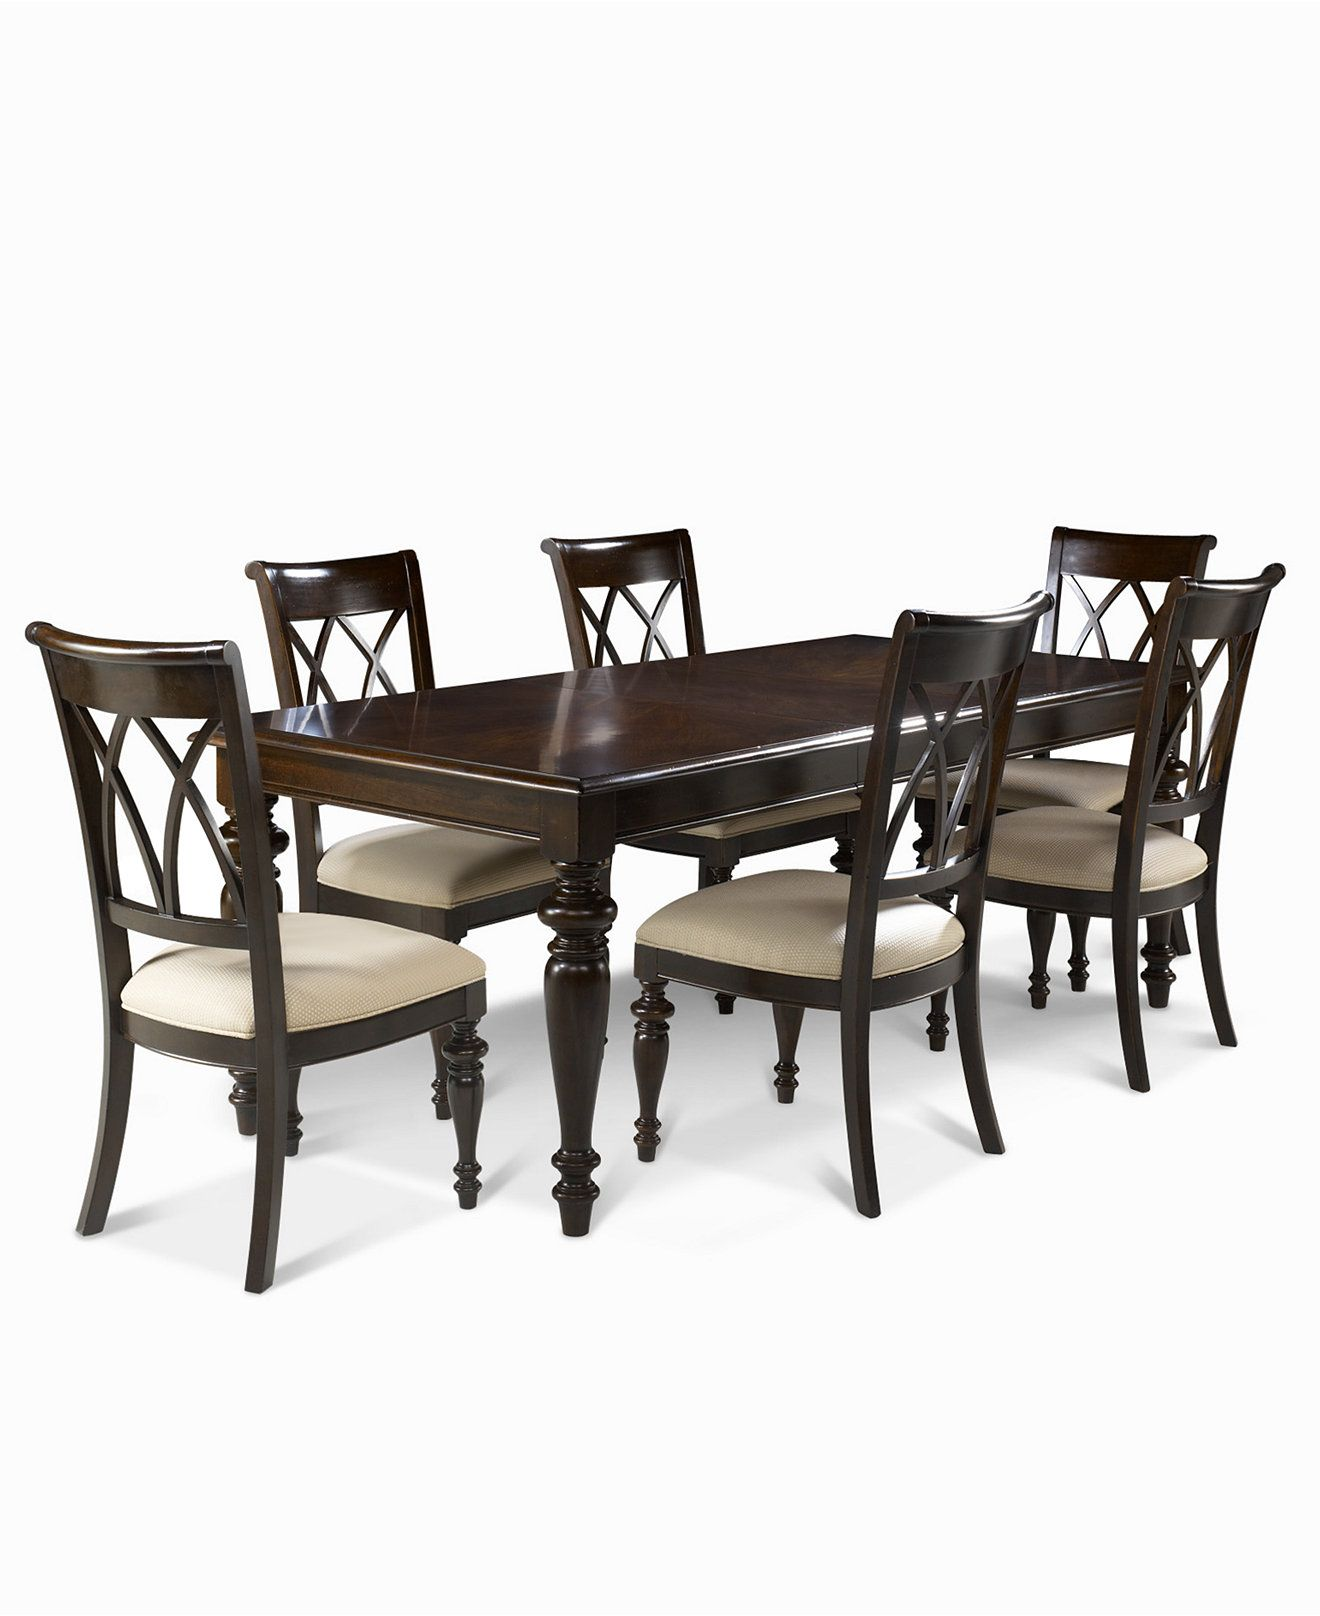 Bradford 7 Piece Dining Room Furniture Set Table 6 Side Chairs Shop All Dini Dining Room Furniture Sets Dining Furniture Makeover Rustic Dining Furniture